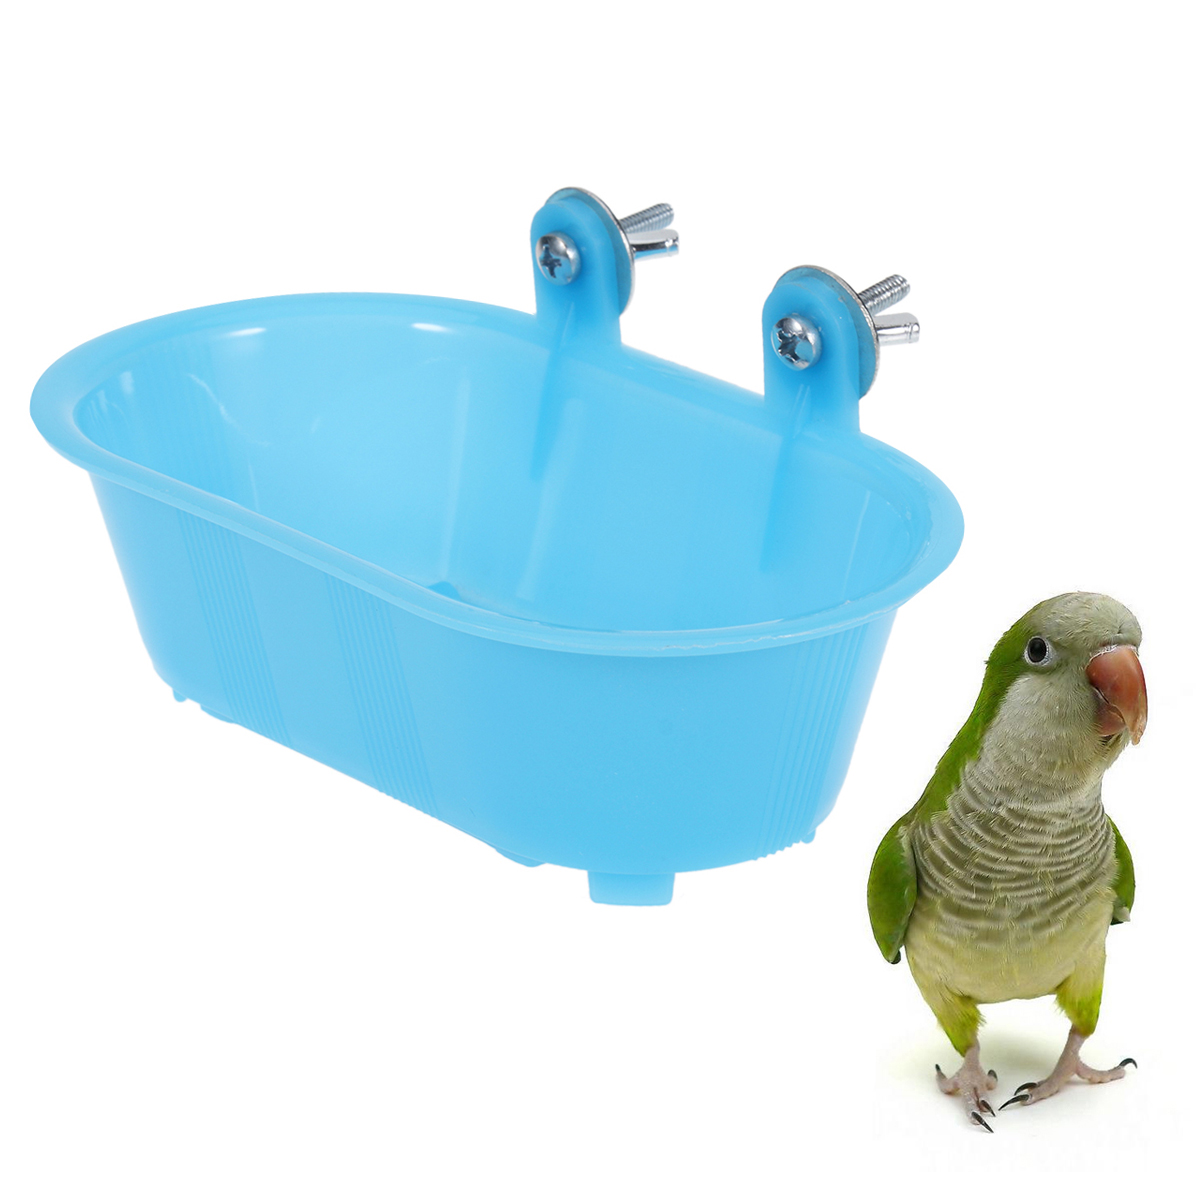 Bathing Tub Toy Parrot Shower Pool Bird Bath Tub Cleaning Tool With Bottom Mirror